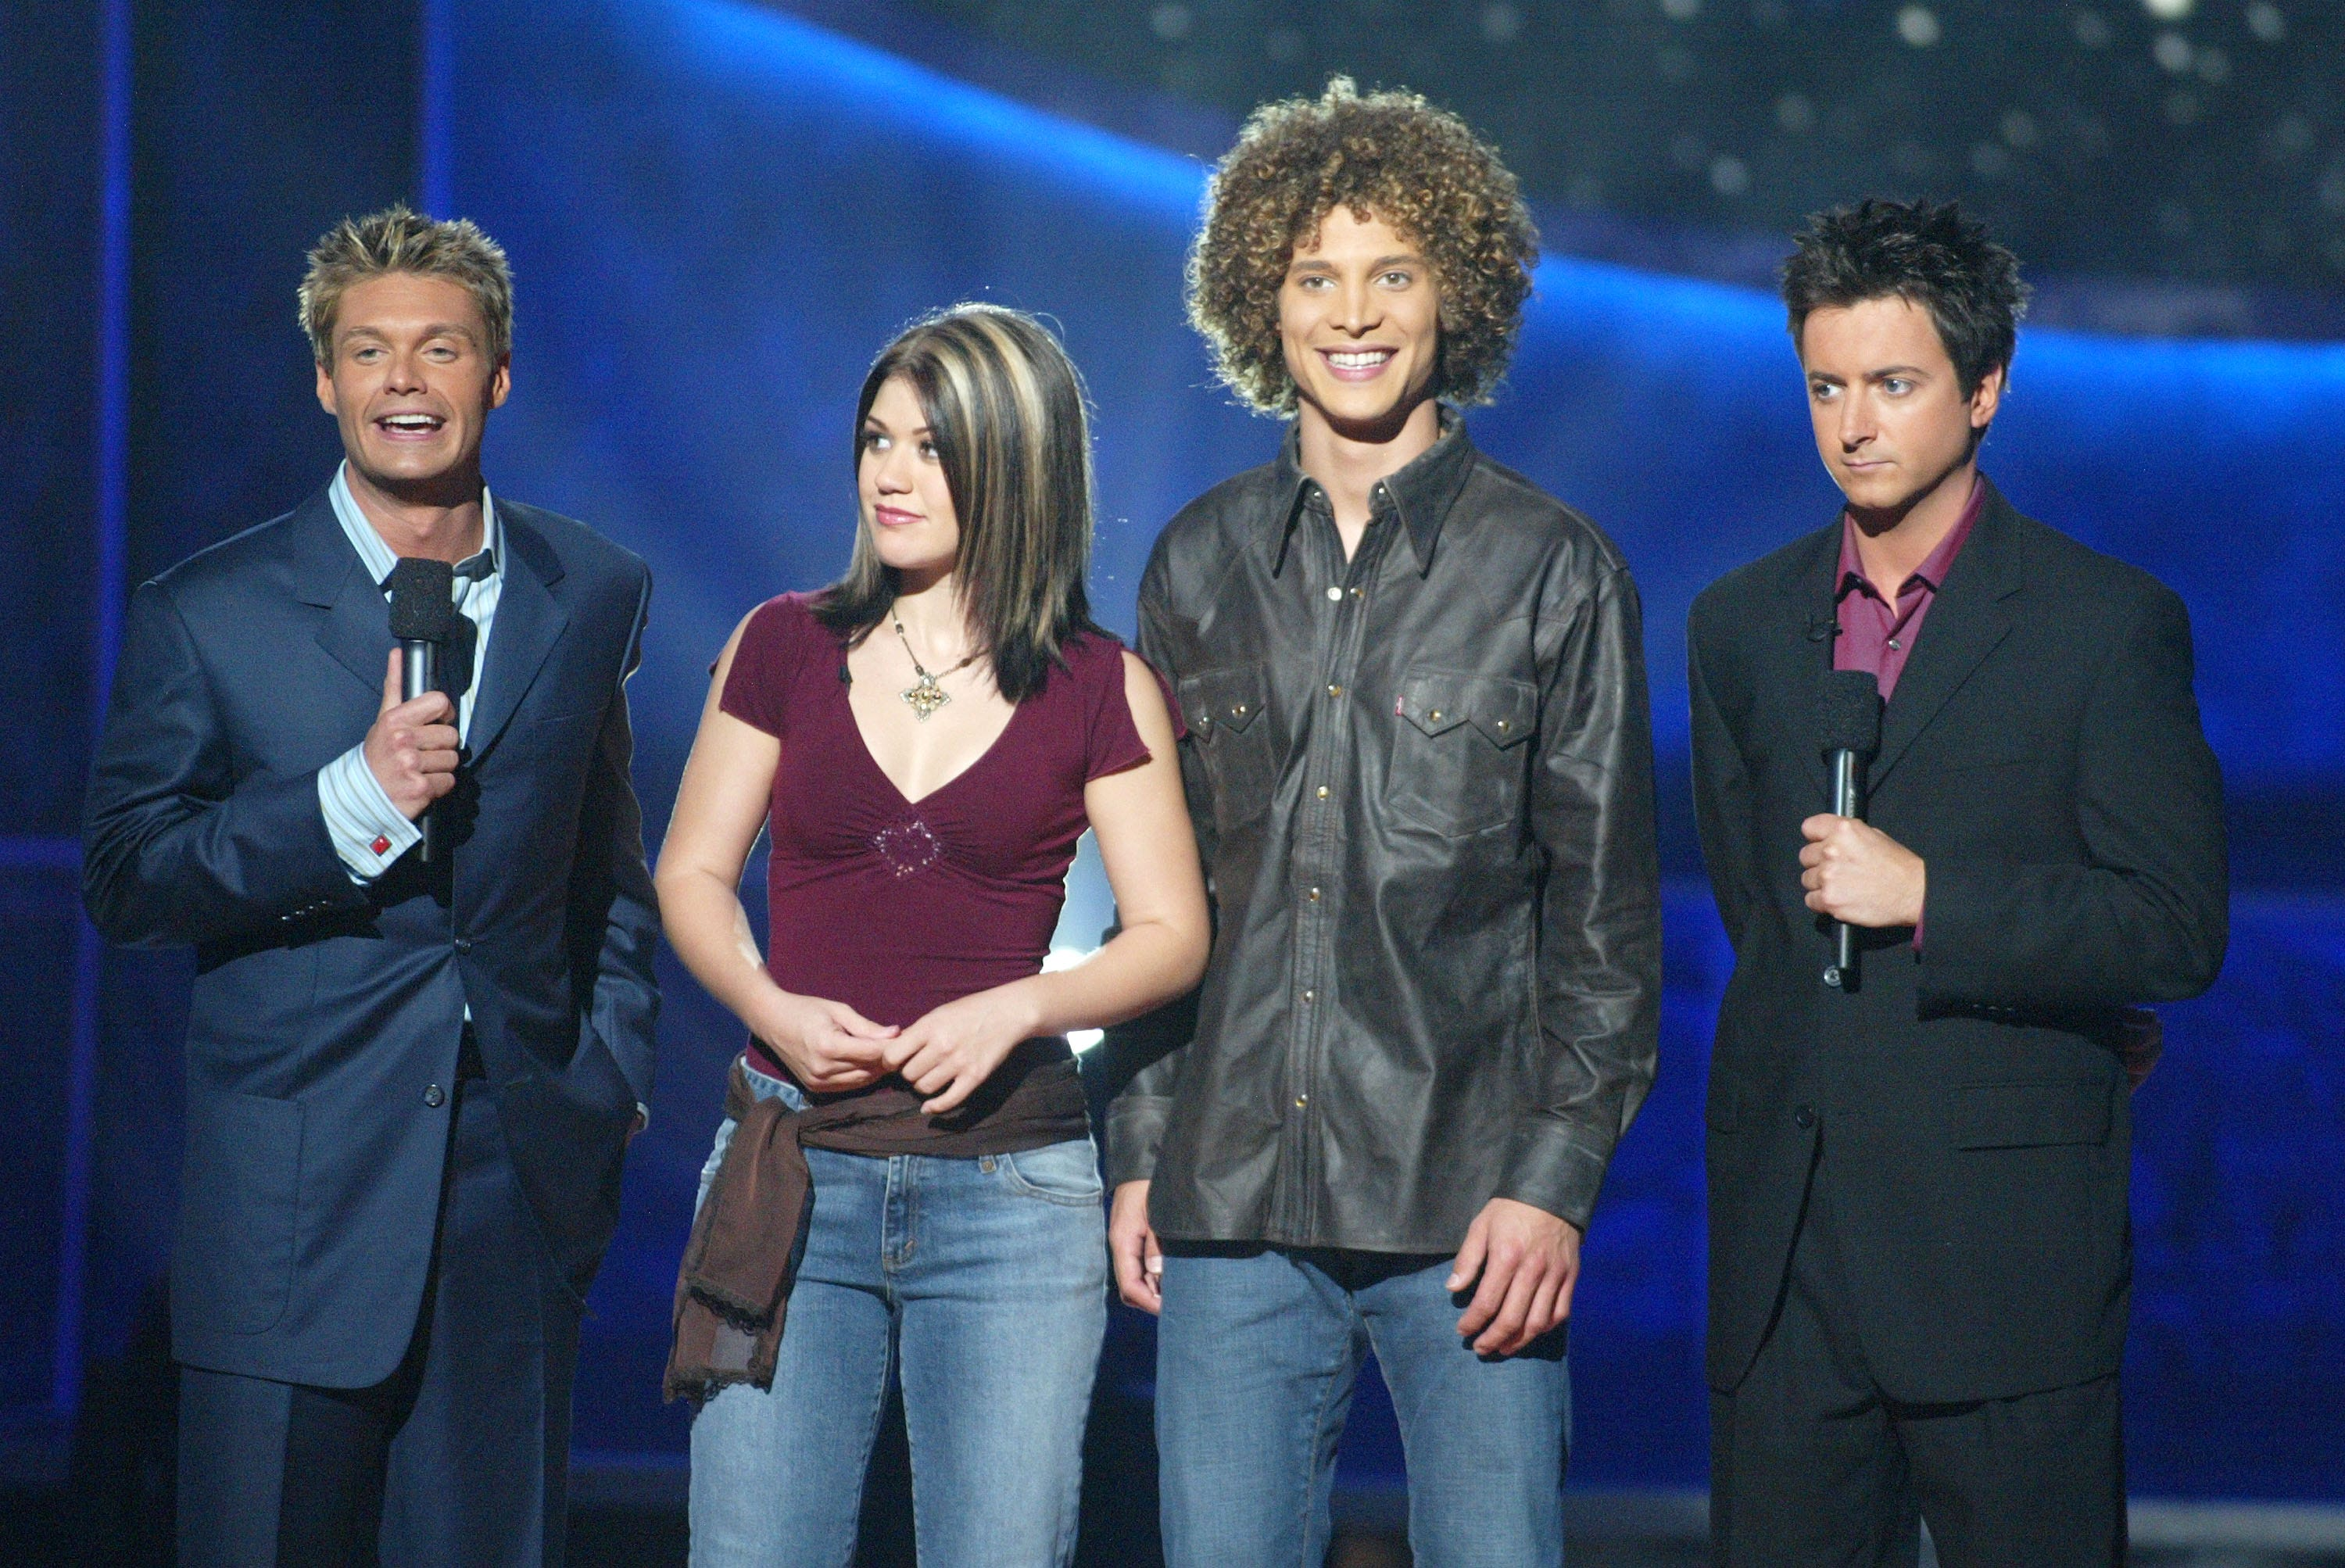 Here's What the Most Famous 'American Idol' Contestants Are Up to Today